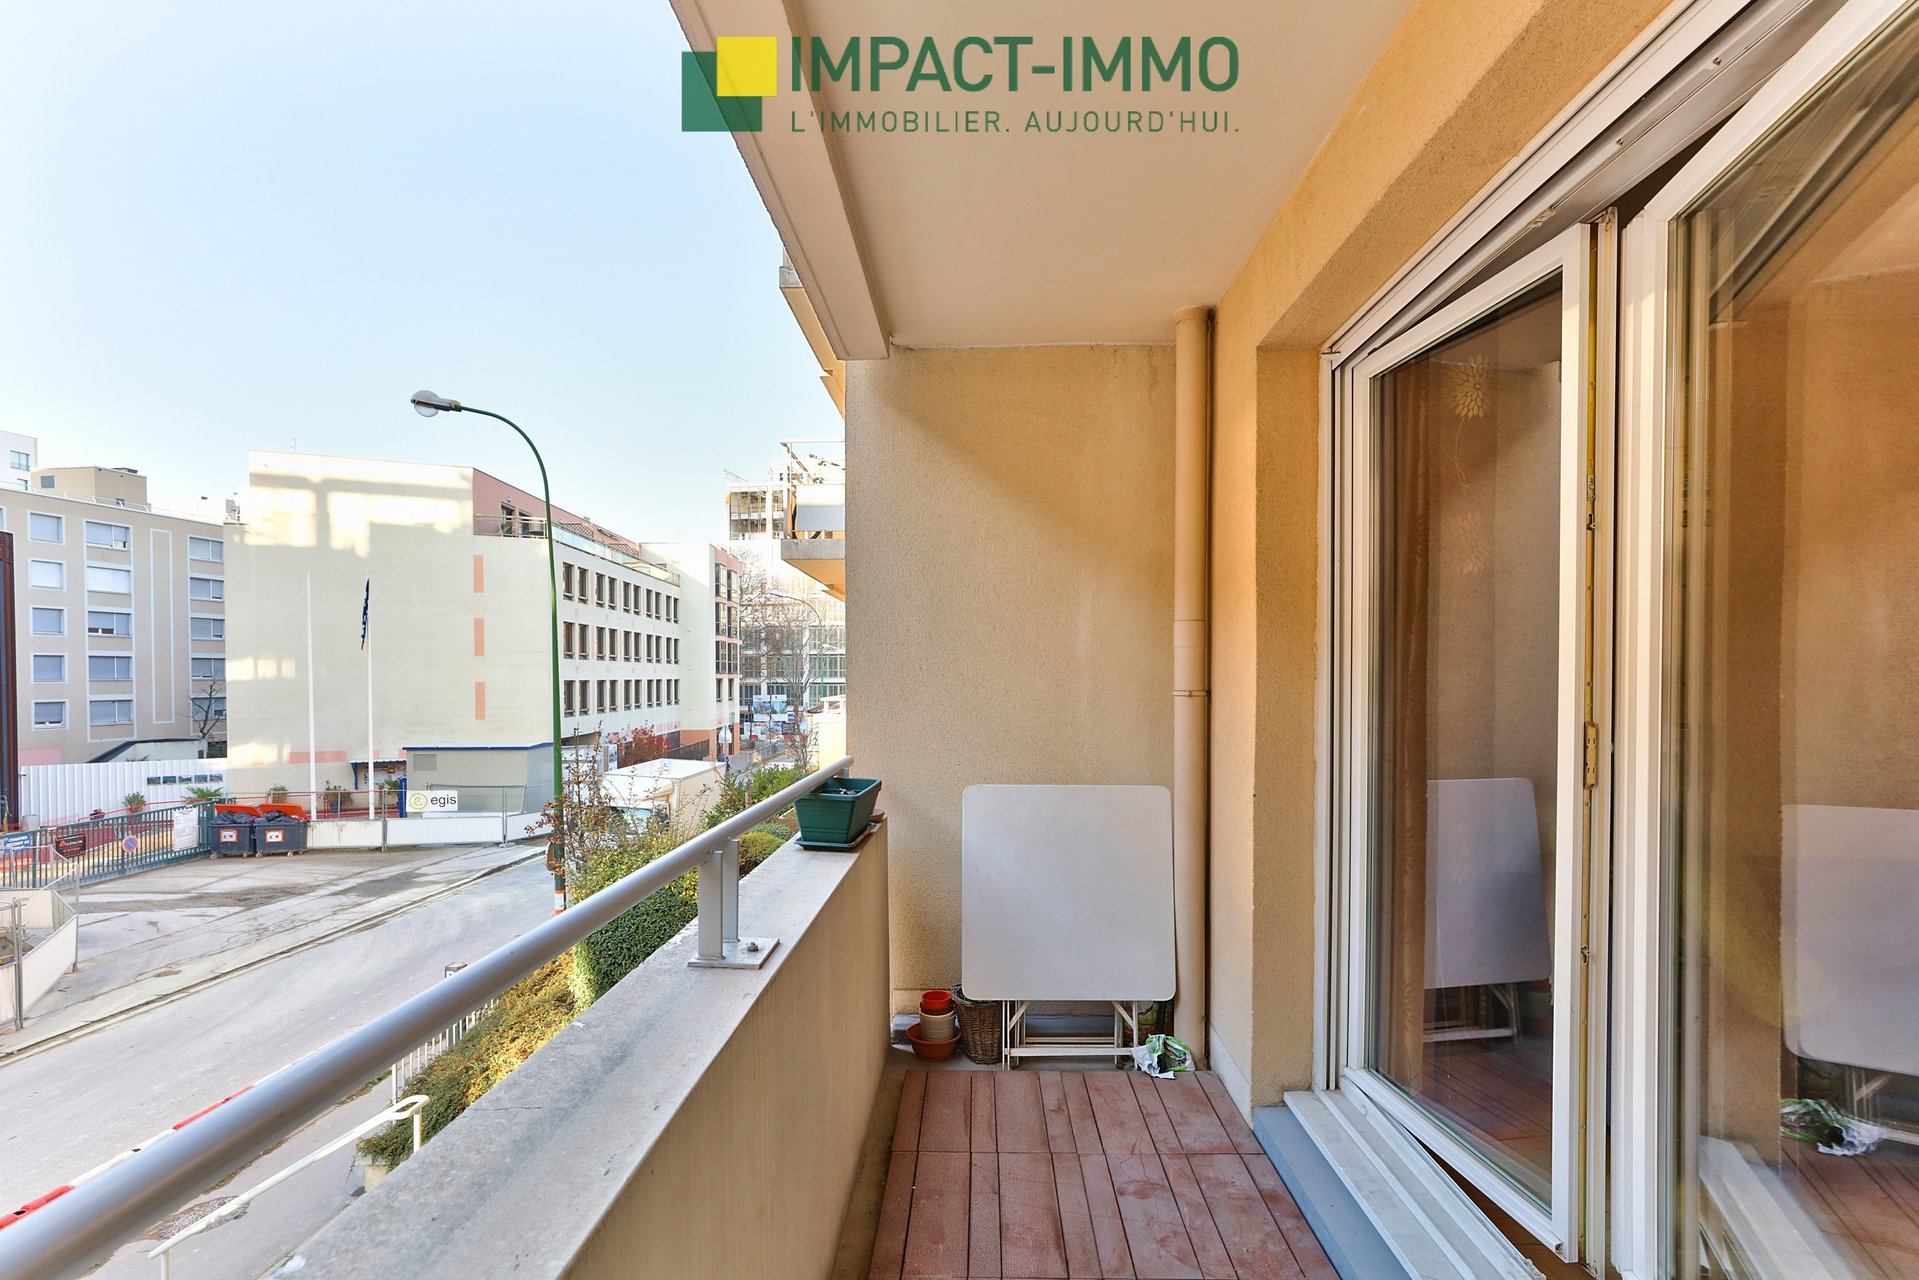 3 PIECES IMMEUBLE RECENT BALCON PARKING